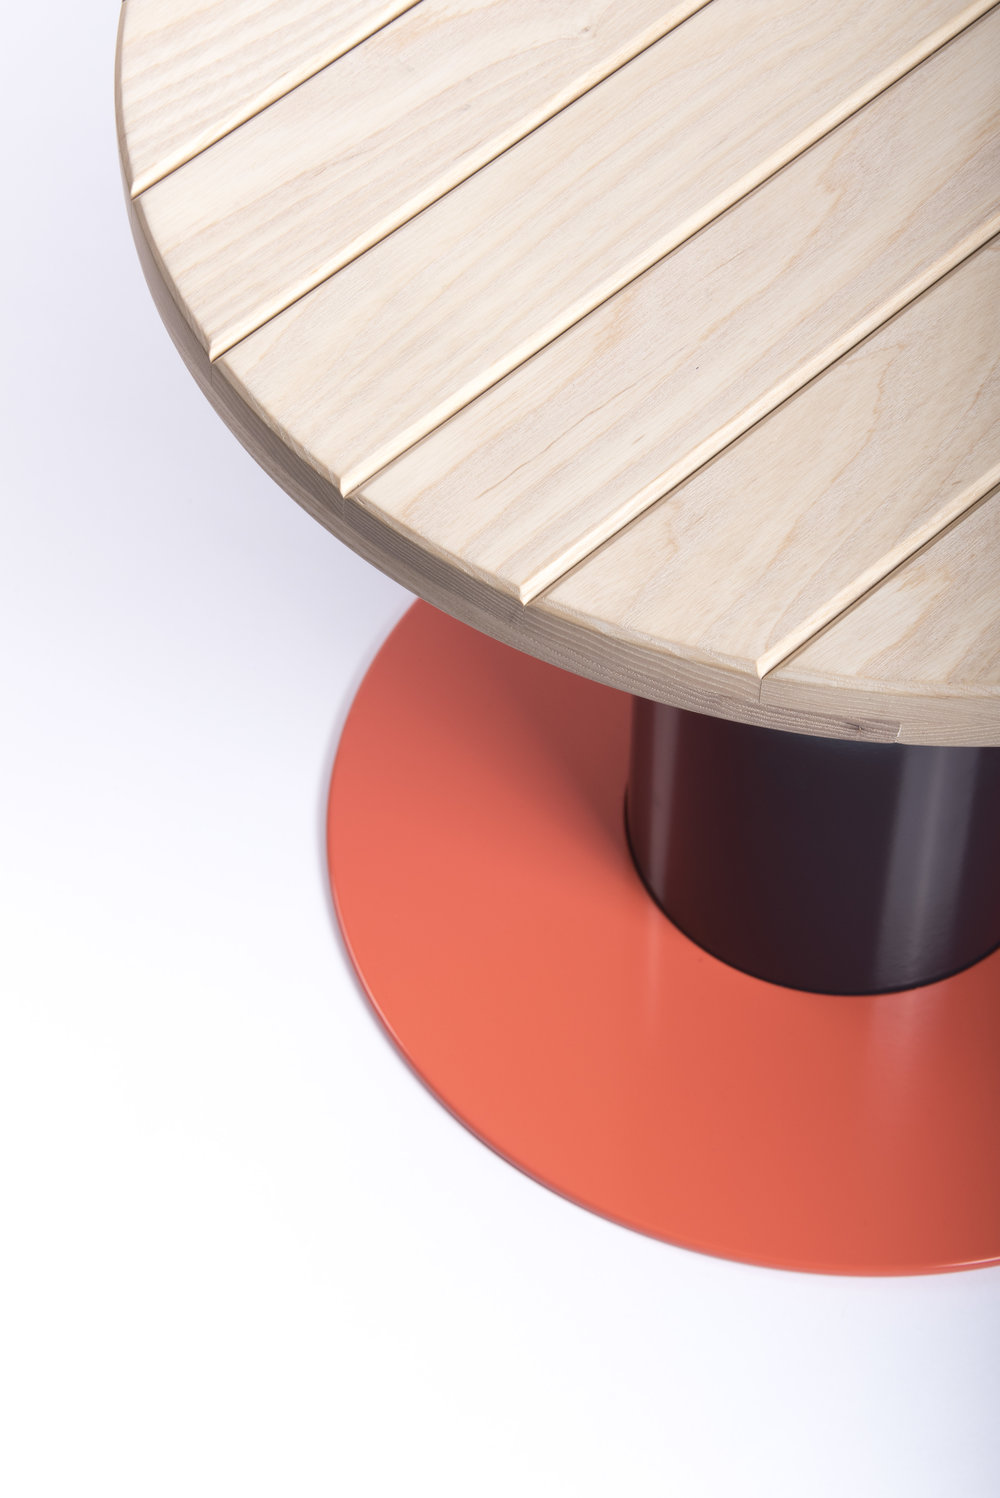 Reel Side Tables - David Derksen Design10.jpg